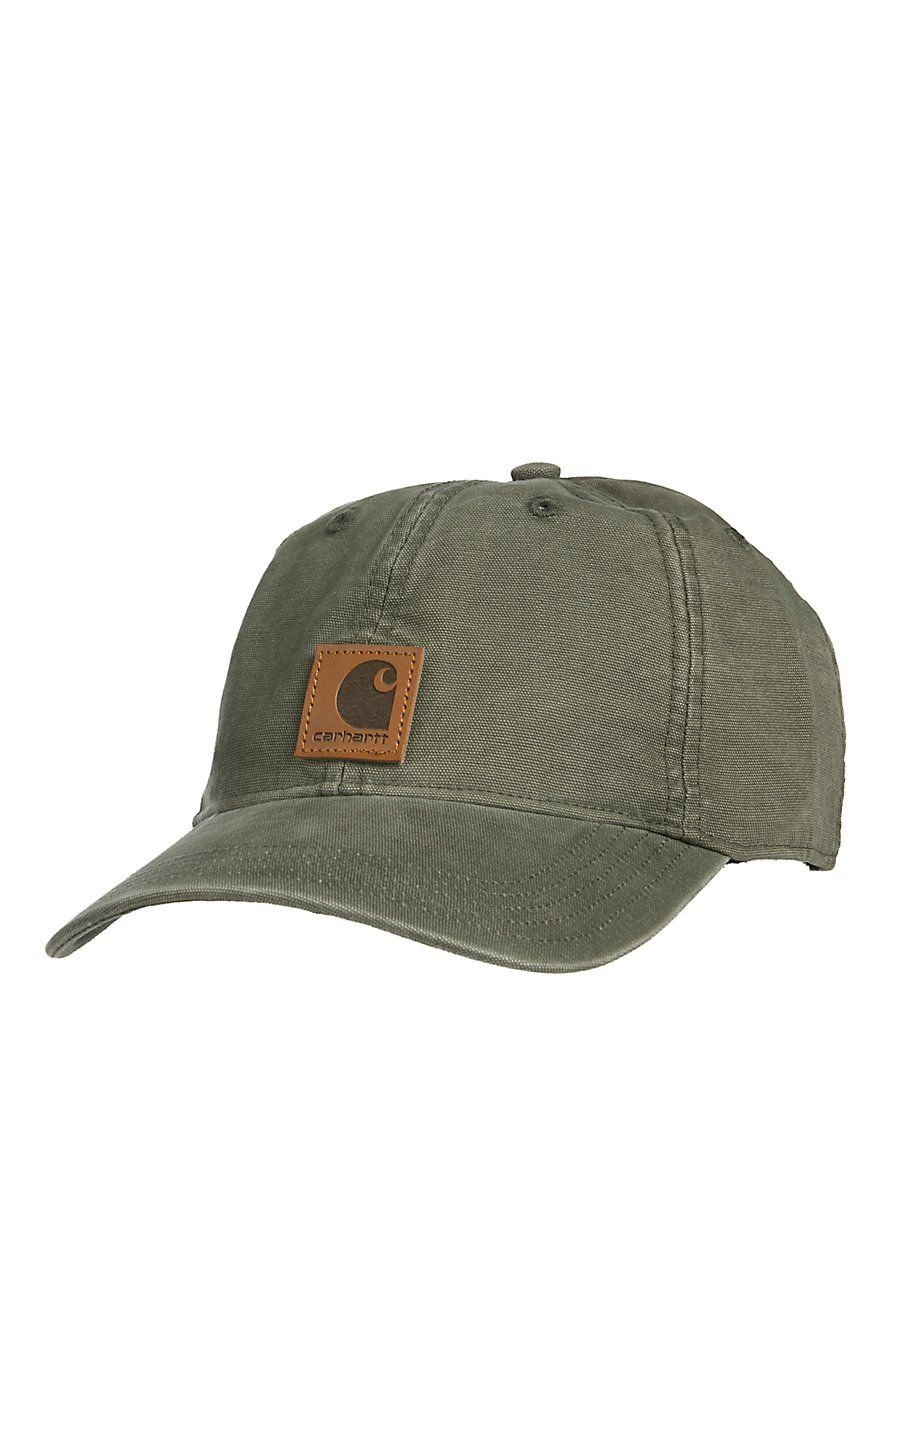 46918942217 Carhartt Men s Army Green Washed Canvas Odessa Cap